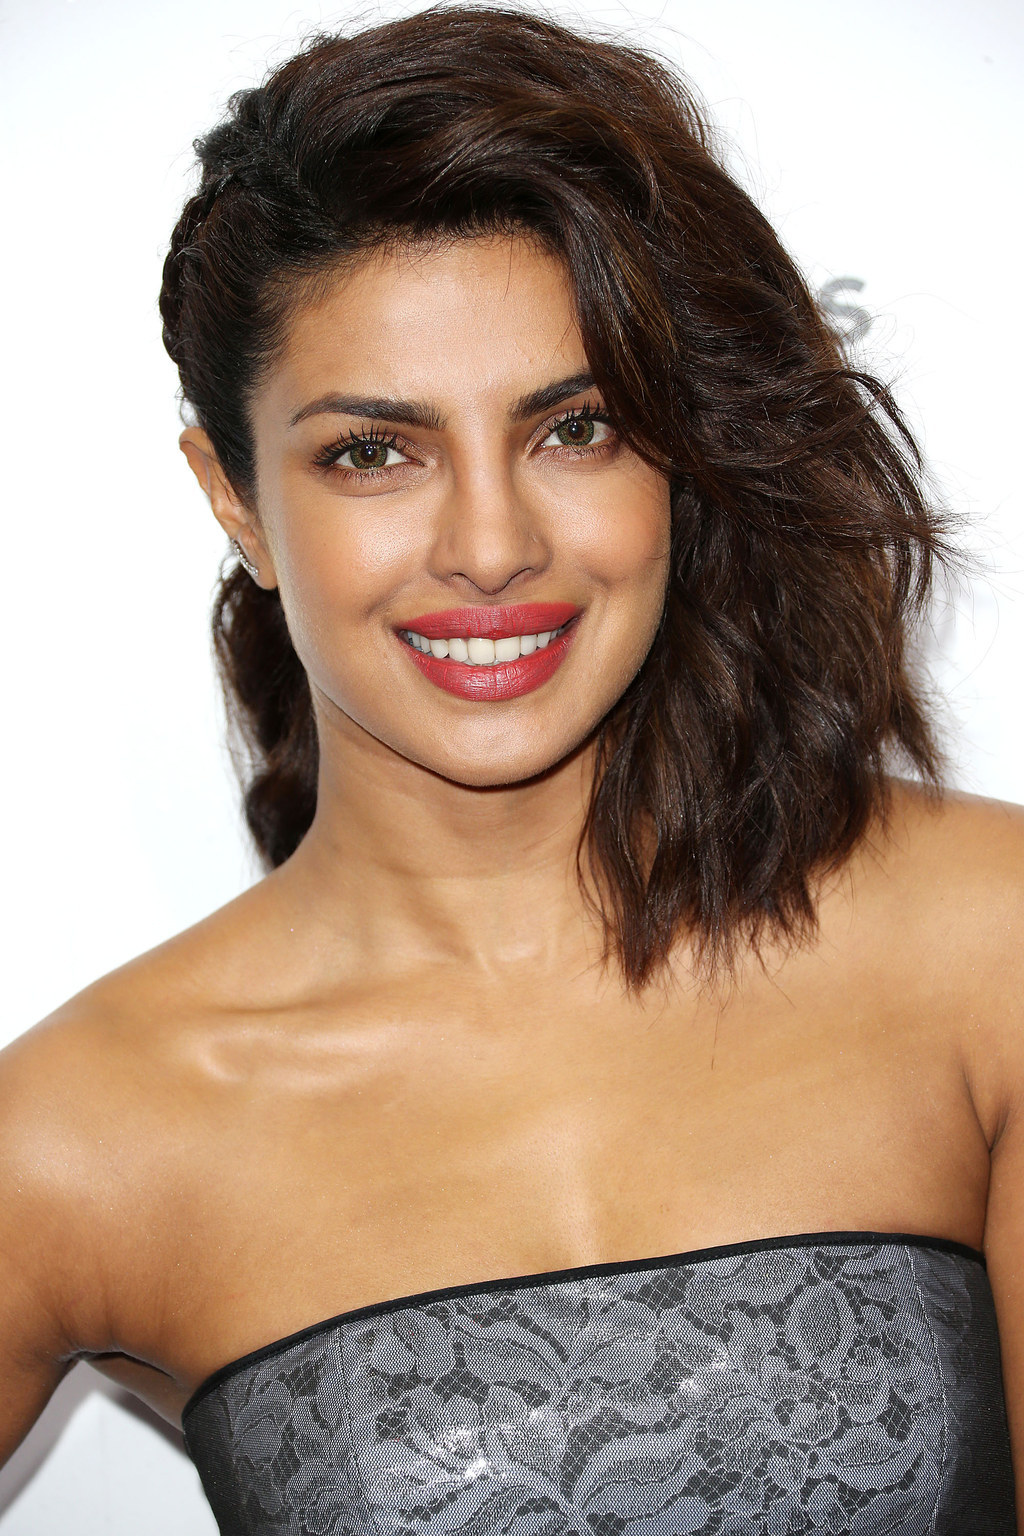 Priyanka Chopra Is Furious At Hollywood's Stereotypes About Indians